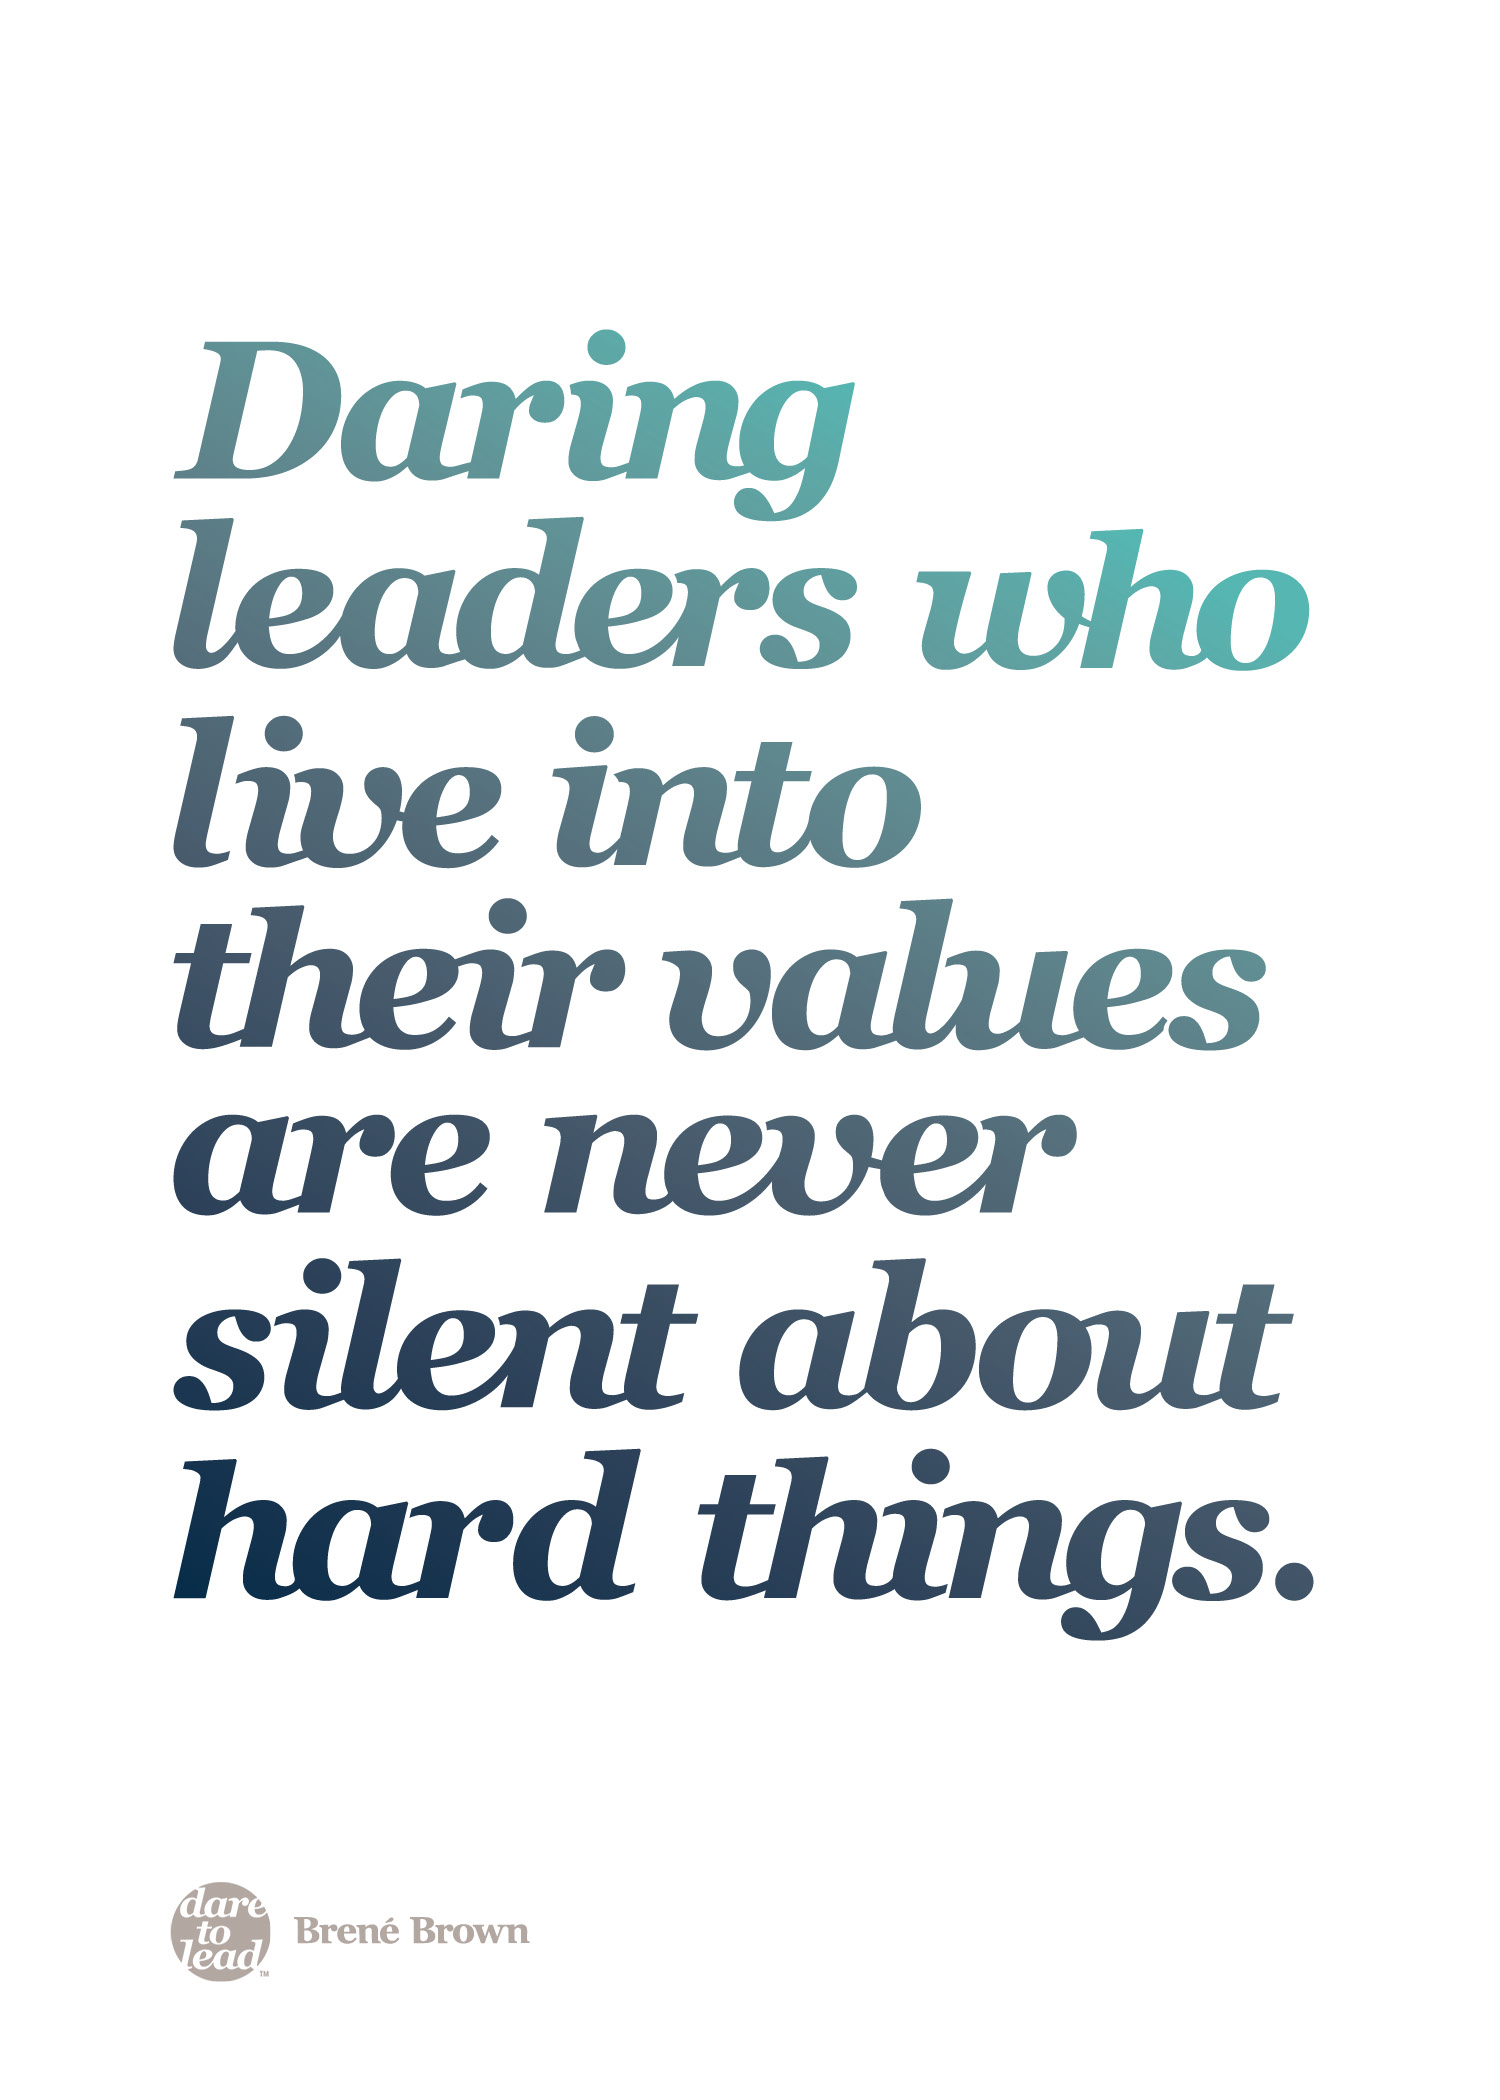 """Daring leaders who live into their values are never silent about hard things."" - Brené Brown"